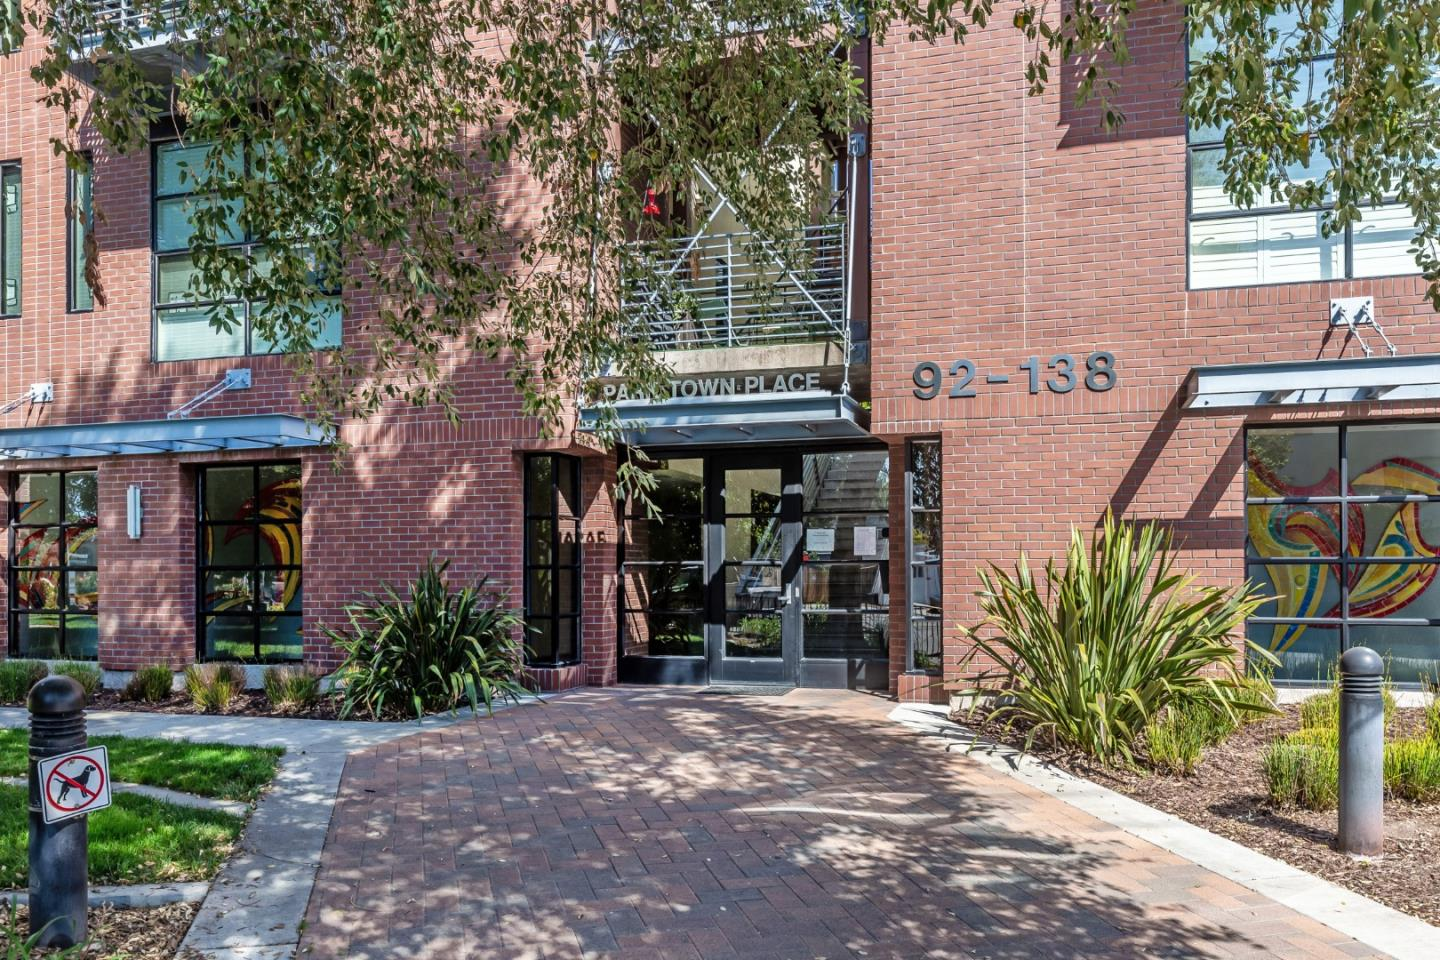 ParkTown Place offers a lifestyle that mingles urban living with a small town appeal in the heart of downtown Campbell.  This single level, end unit condo has many upgrades and exemplifies pride of ownership. Enjoy all the vibrancy of shops, restaurants, parks and entertaining, and come back home to a private, safe and peaceful setting. No neighbors across or above the unit.  Bright open living space with custom built-in cherry wood cabinetry with matching crown molding, built in lights and roll out trays. Gourmet kitchen featuring granite countertops & stainless steel appliances. Plantation shutters, new paint, upgraded carpet, crown molding and upgraded baseboards throughout. This premier complex offers privacy with secured gated underground parking with 2 dedicated parking spaces and oversized elevator. Great location, close to farmers market, Los Gatos Creek Trail, Campbell Park, Pruneyard shopping center, Trader Joe's, Whole Foods, Light Rail station & convenient access to Hwy 17.